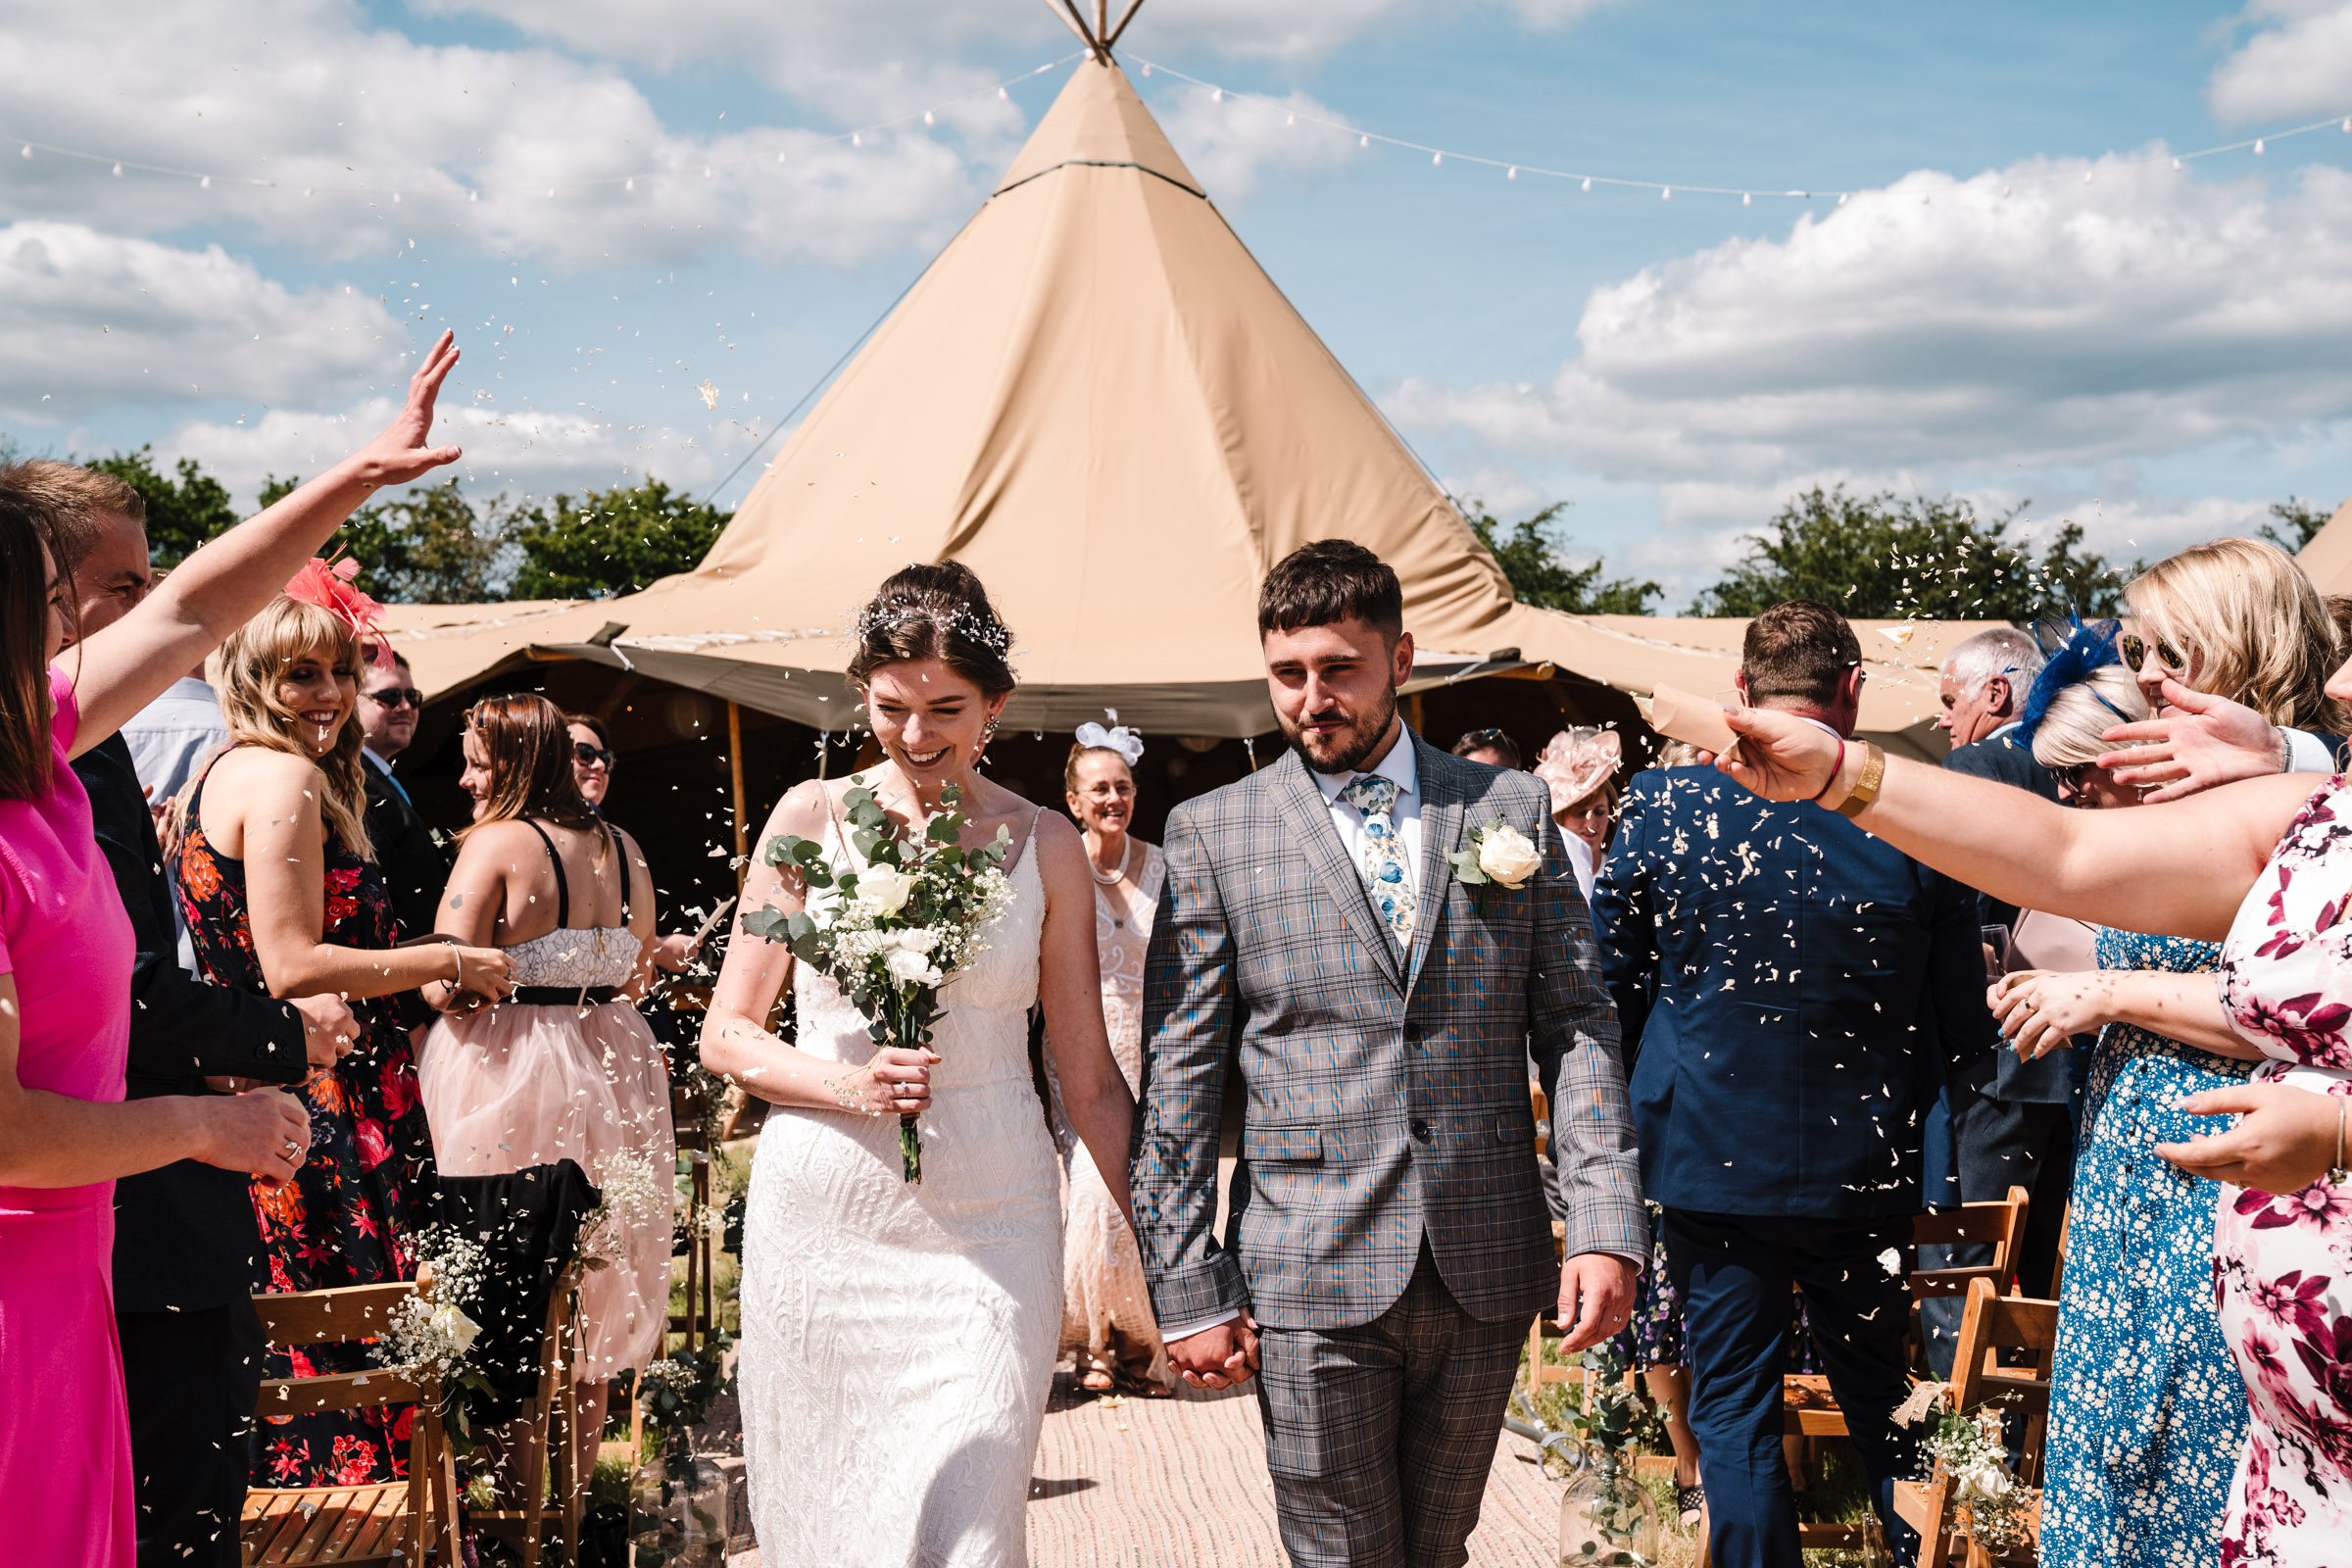 guests throwing confetti over the bride and groom at tipi wedding, kenilworth